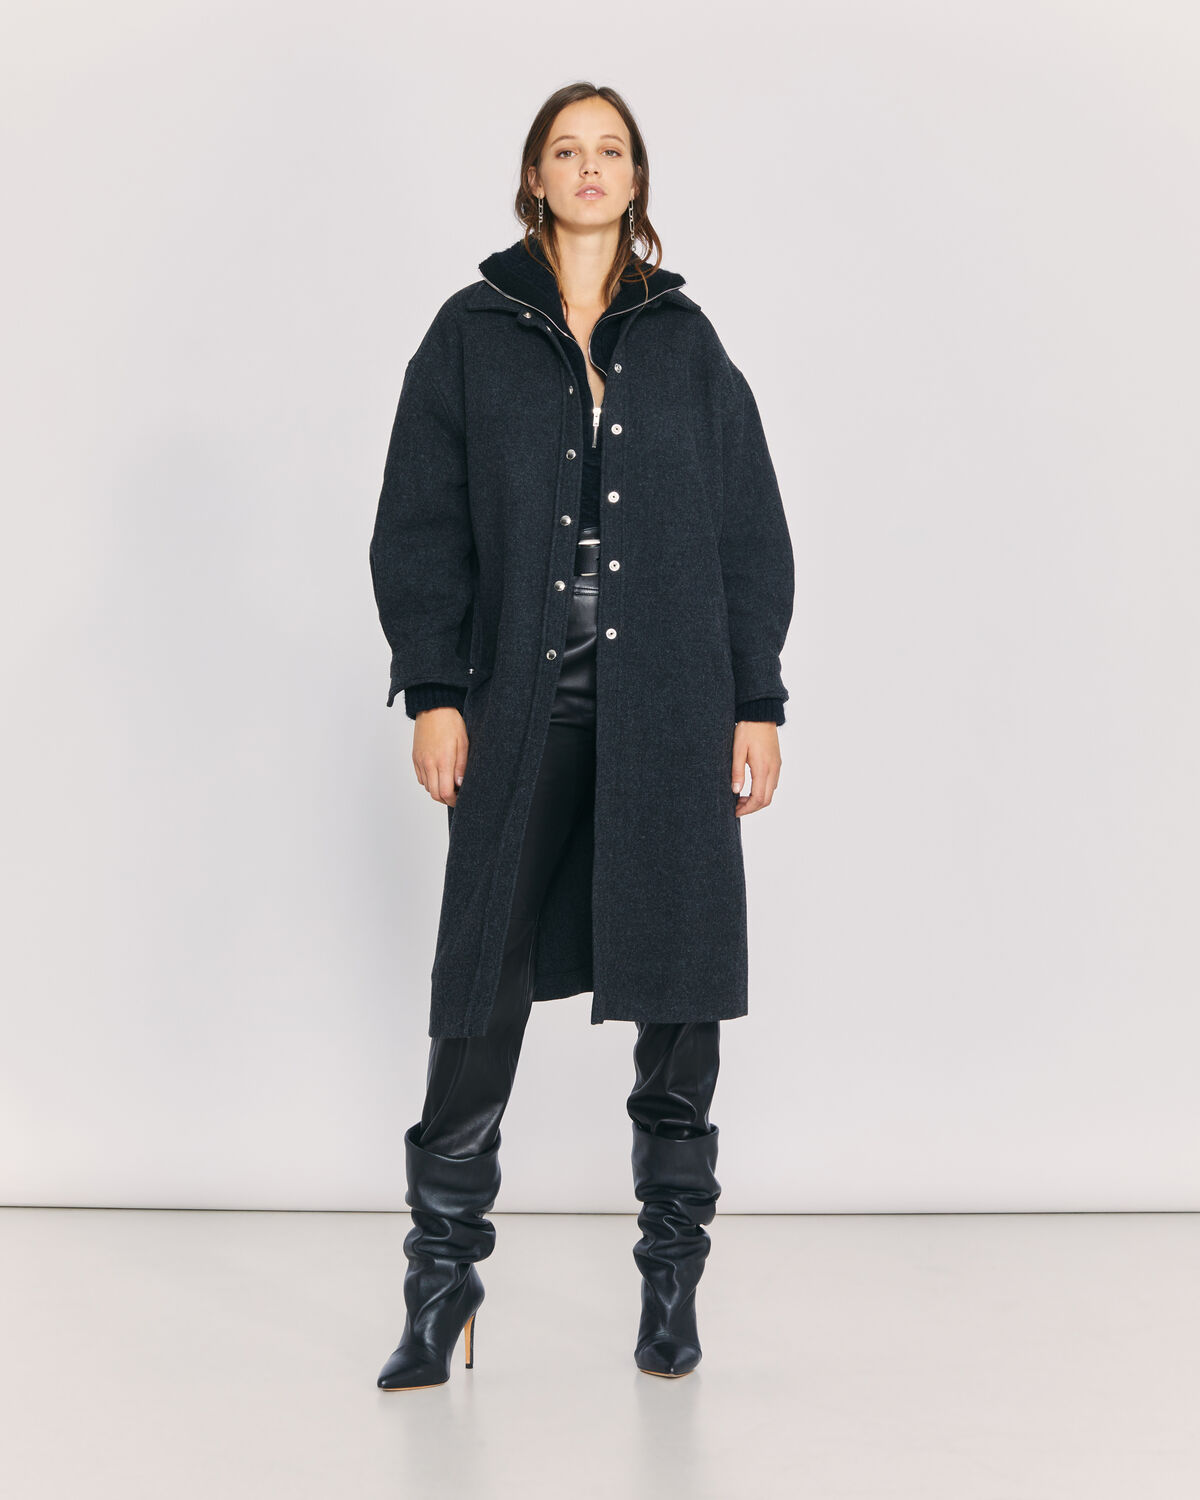 IRO - LUAN LONG OVERSHIRT STYLE COAT ANTHRACITE